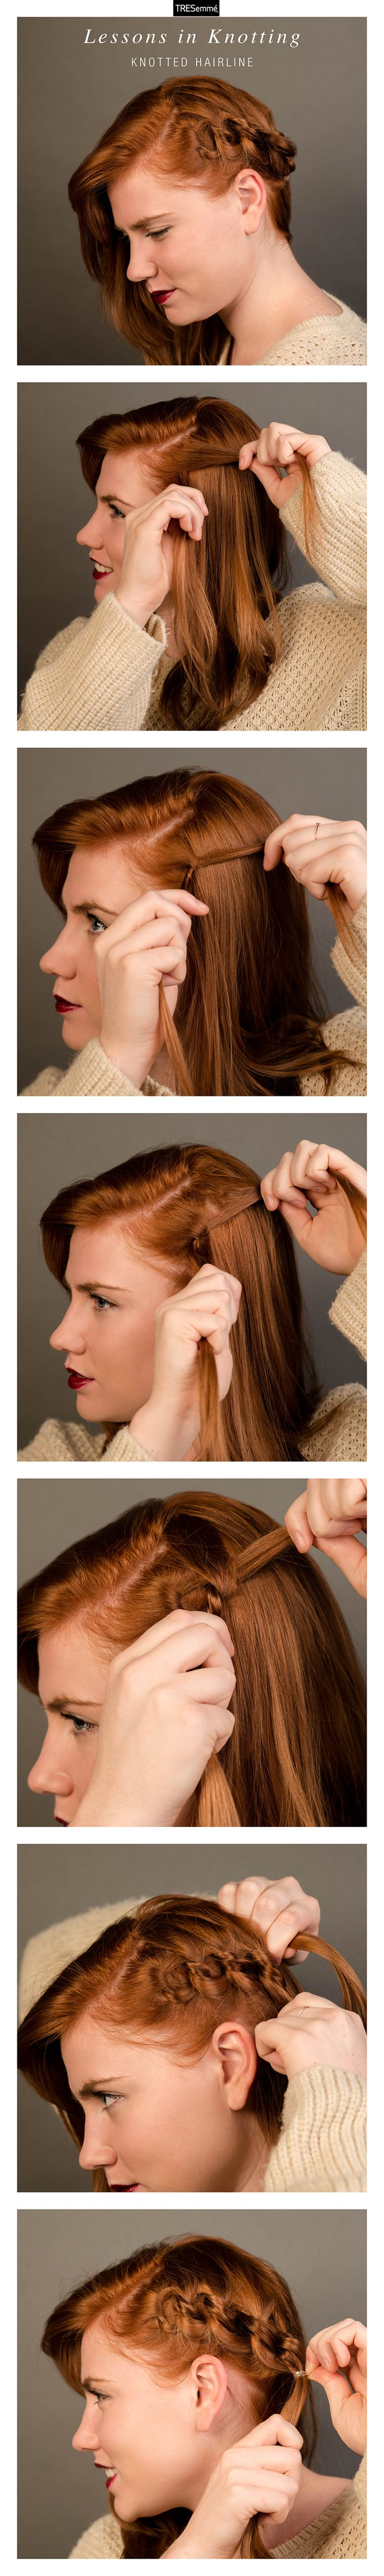 Lessons in Knotting: Can't grasp the hairline braid? That's ok! Try this knotting technique to embellish your hairstyle.